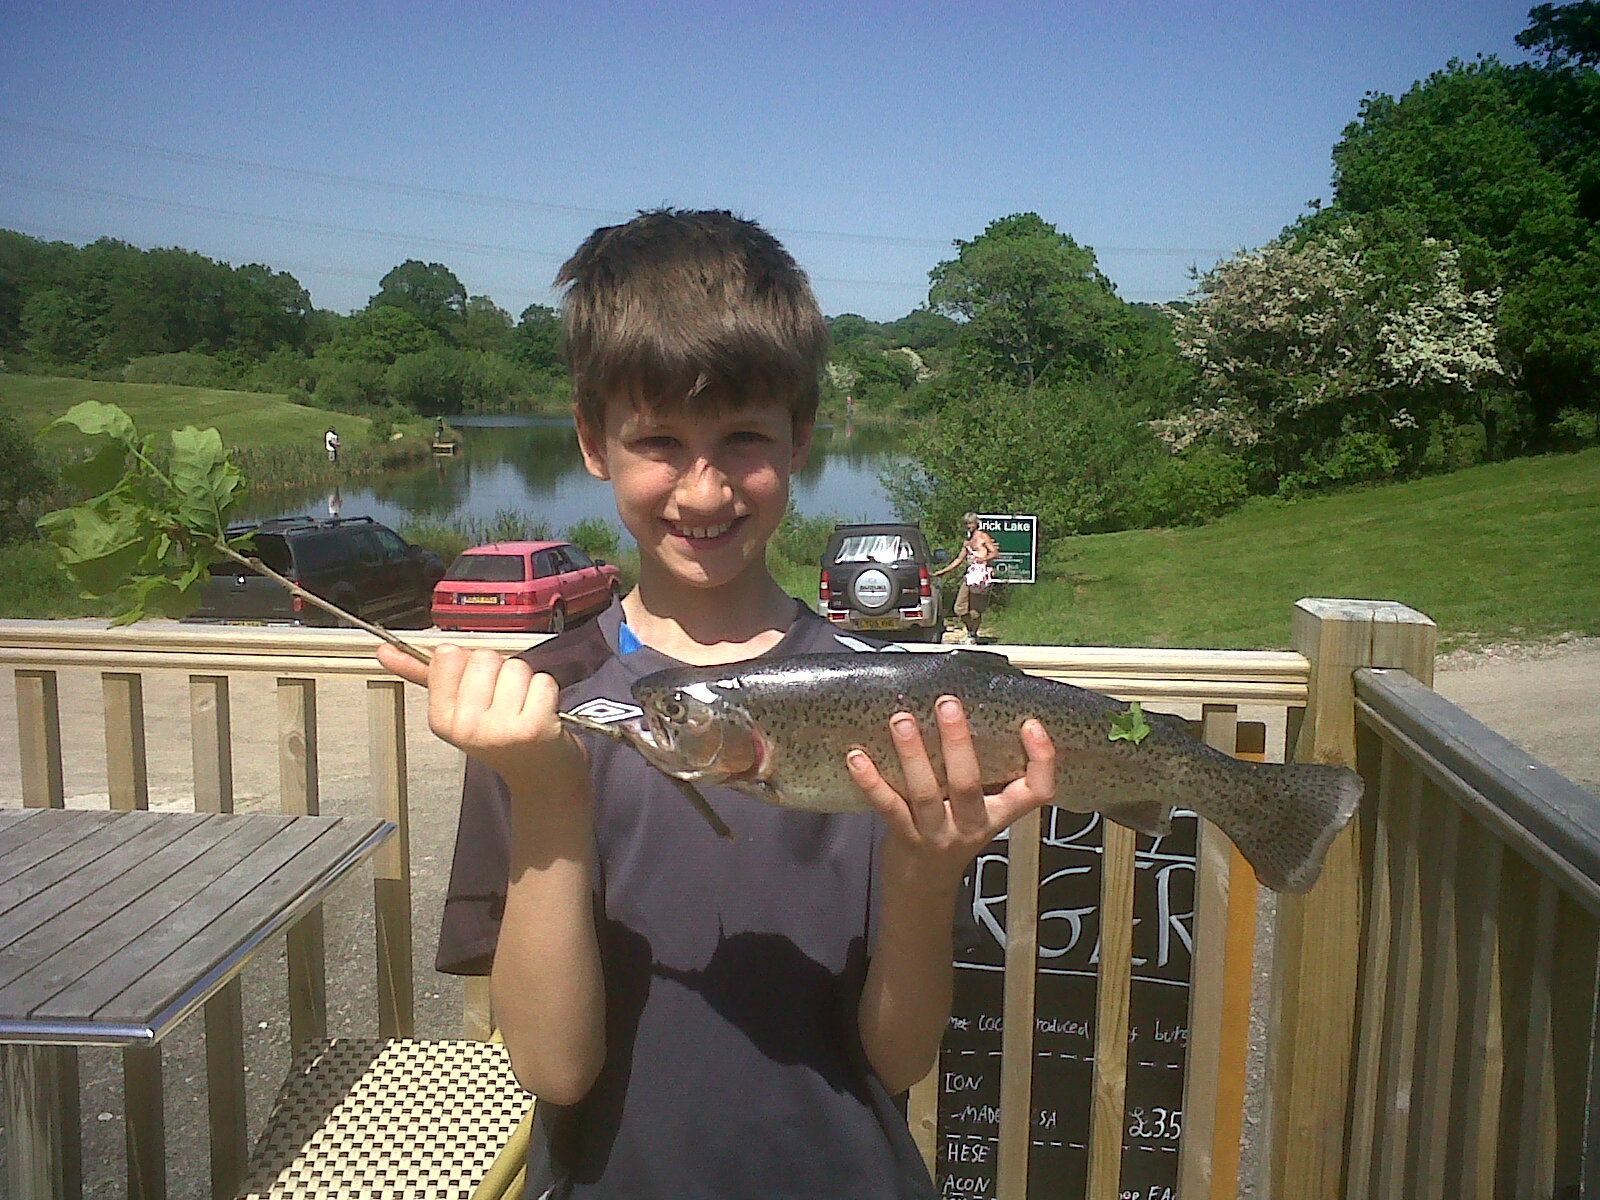 Victor Mario at Brick Farm Lakes catches his first ever rainbow trout